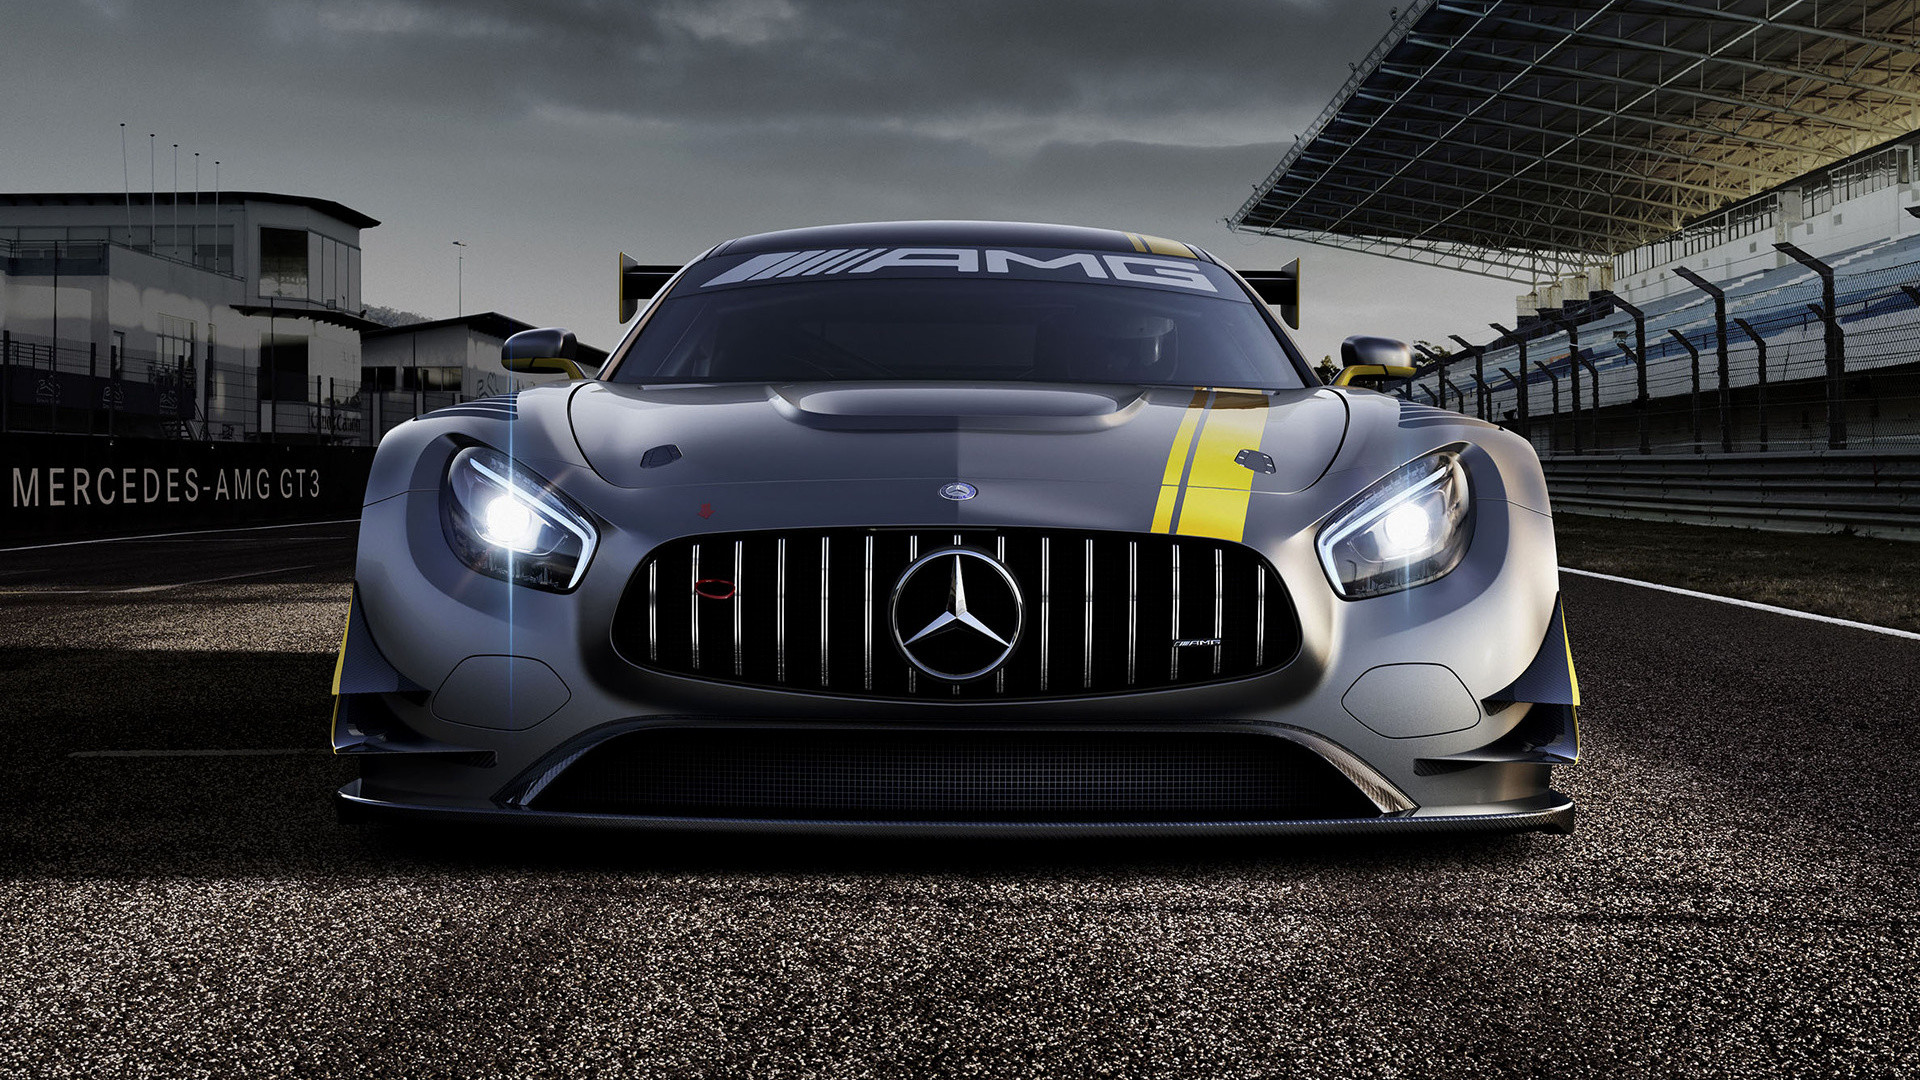 Mercedes-AMG GT3 (2015) Wallpapers and HD Images